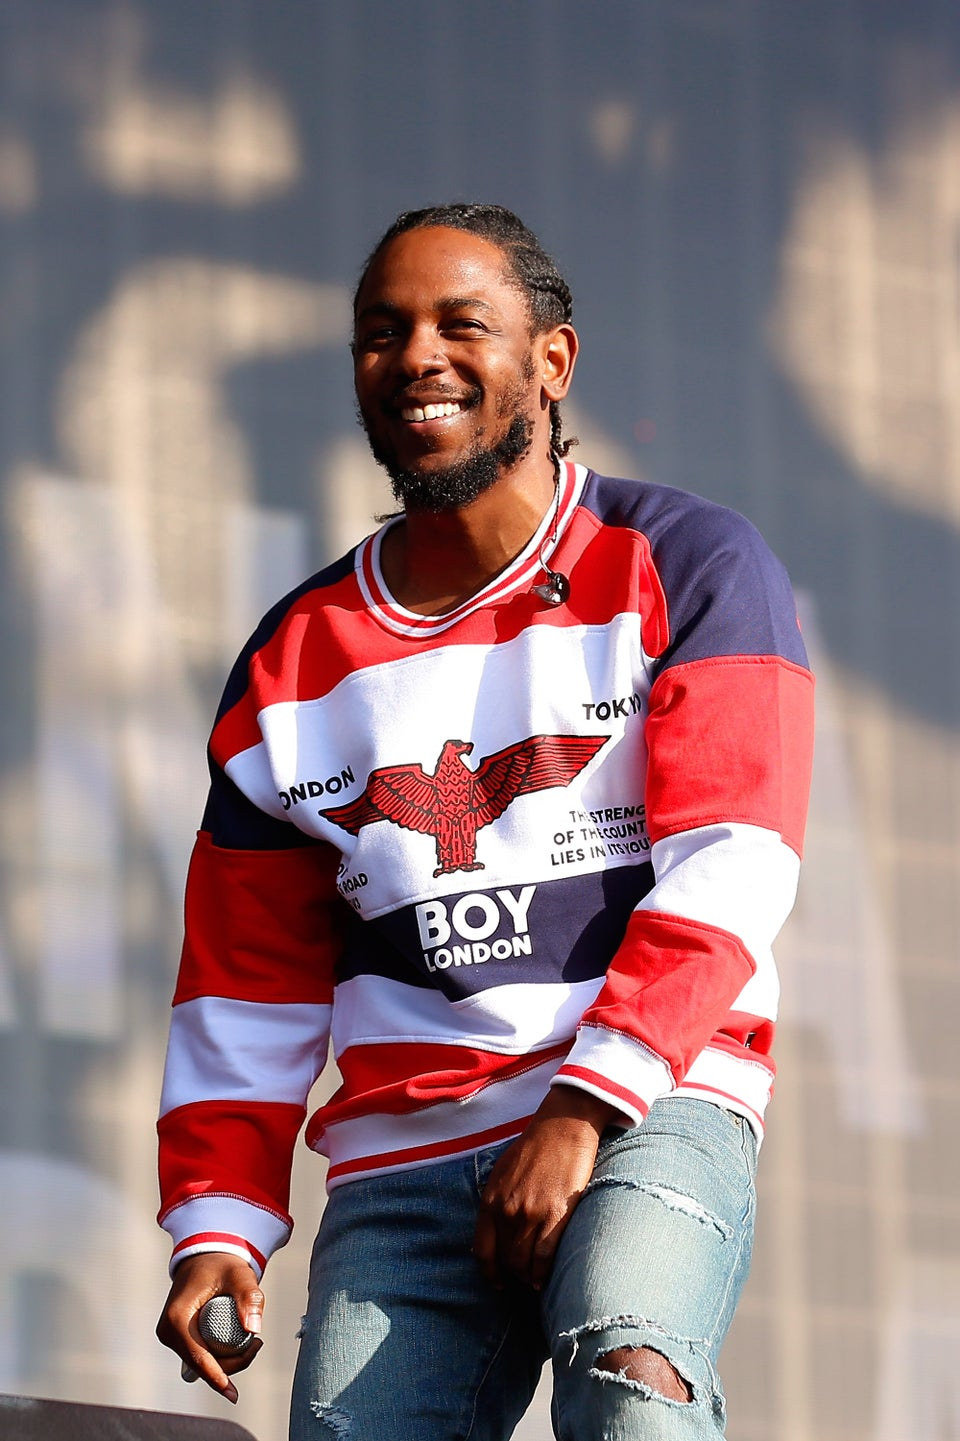 #BlackExcellence: Kendrick Lamar Makes History As The First Rapper To Win A Pulitzer Prize